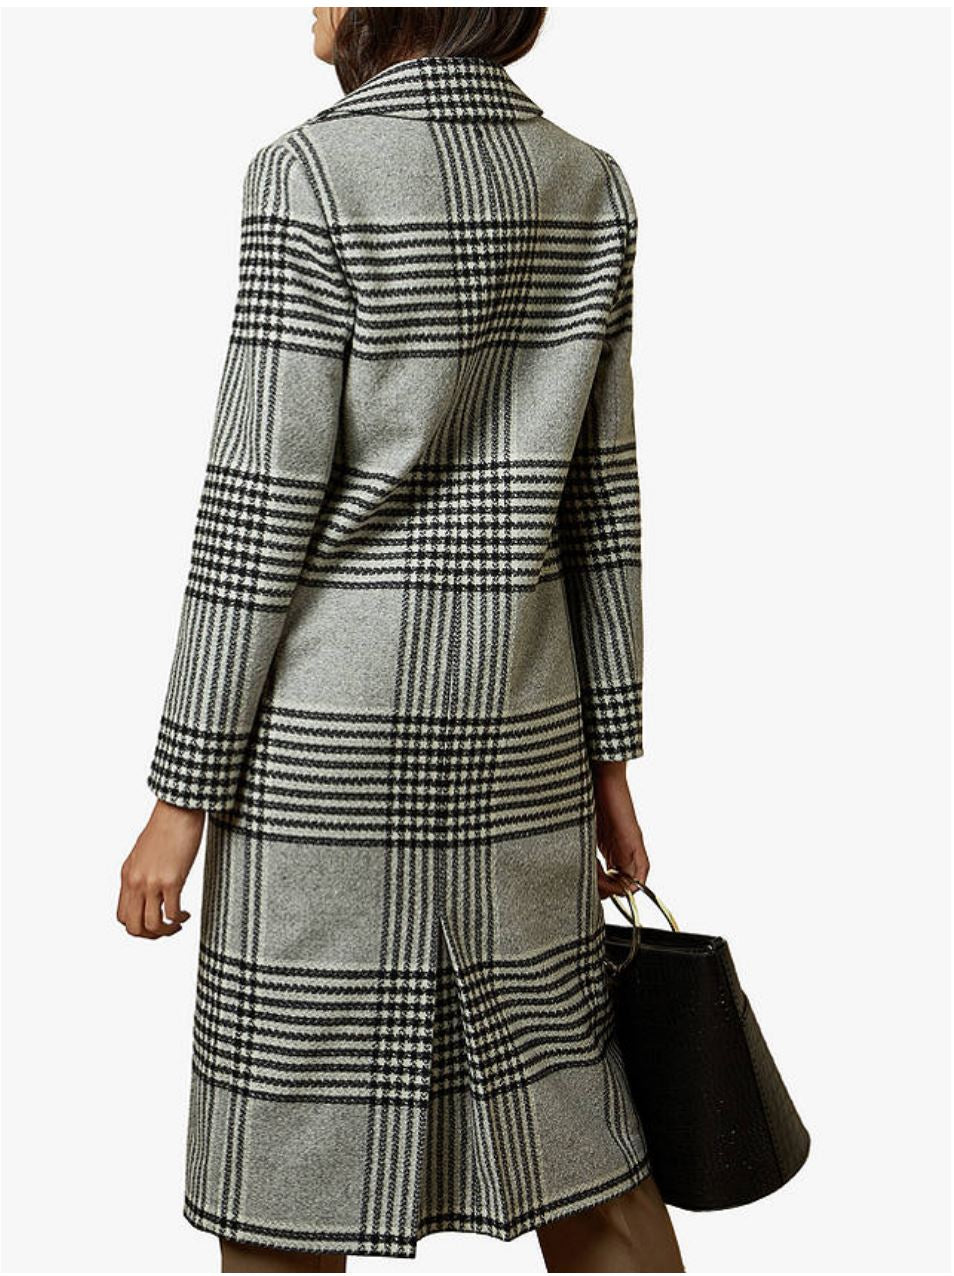 Celinna Check Coat, Black